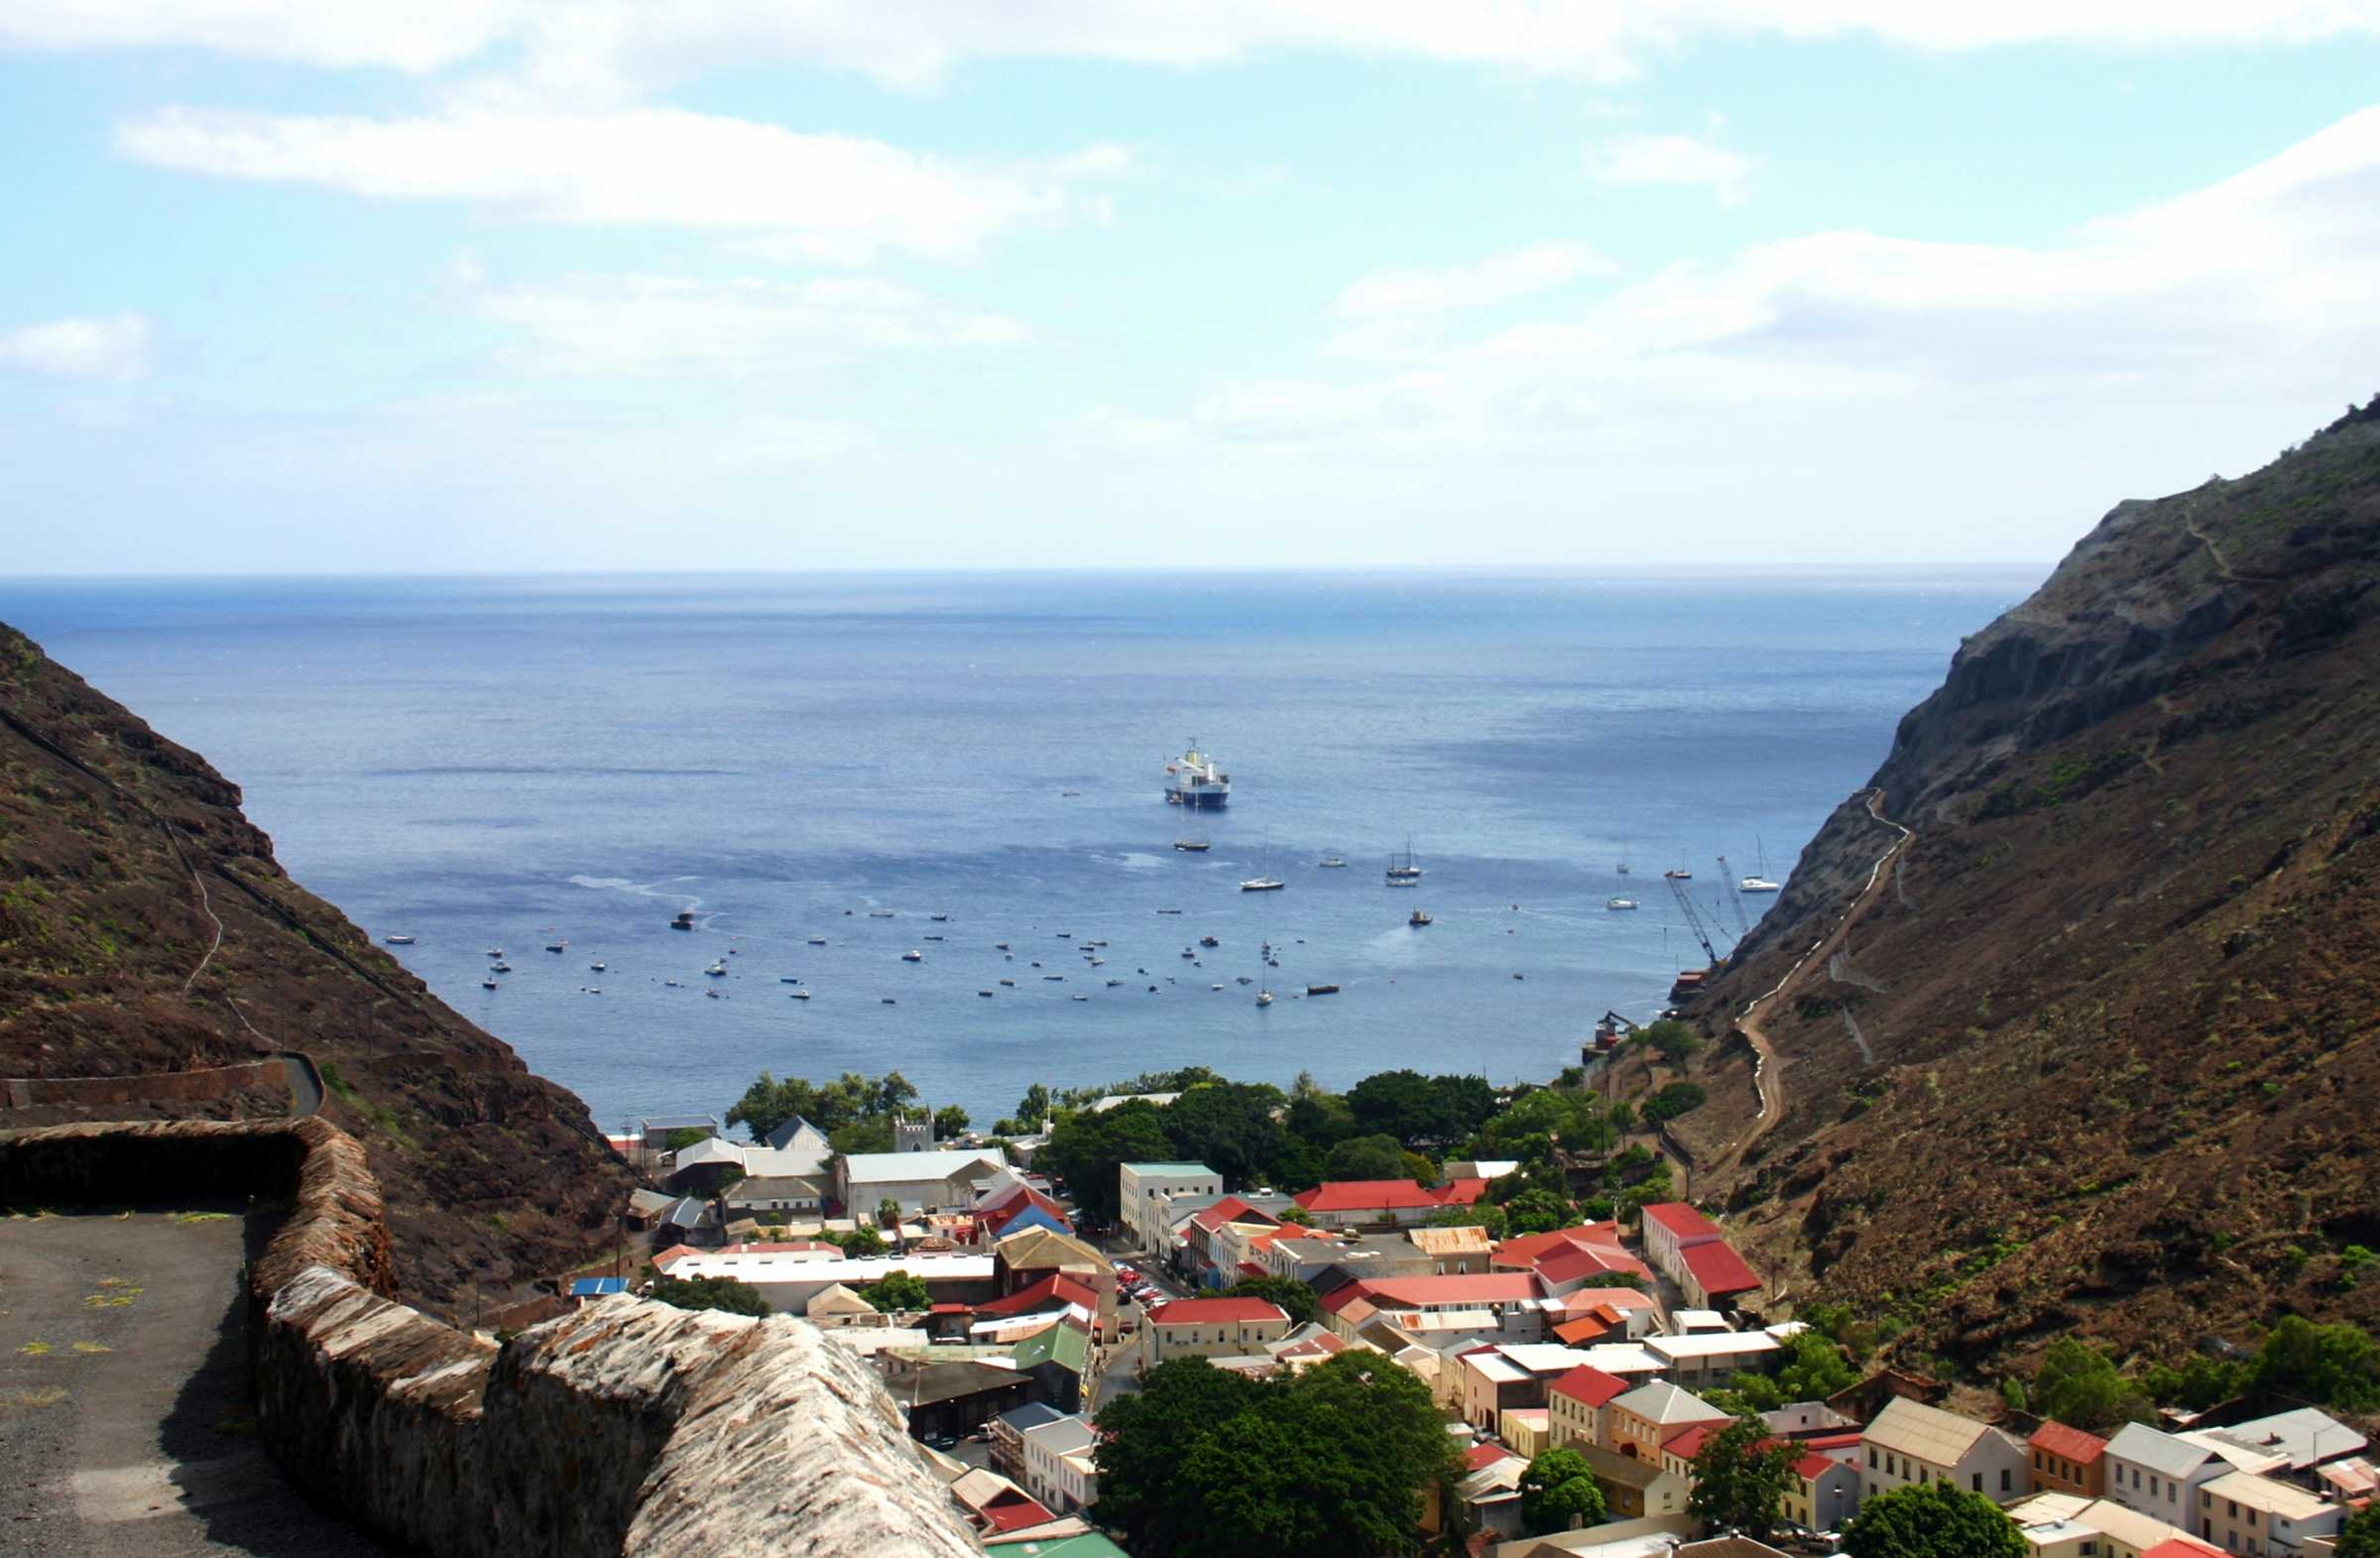 saint helena island men The island of saint helena is administratively divided into eight districts, each with a community centre the districts also serve as statistical subdivisions the island is a single electoral area, sending twelve representatives to the legislative council.